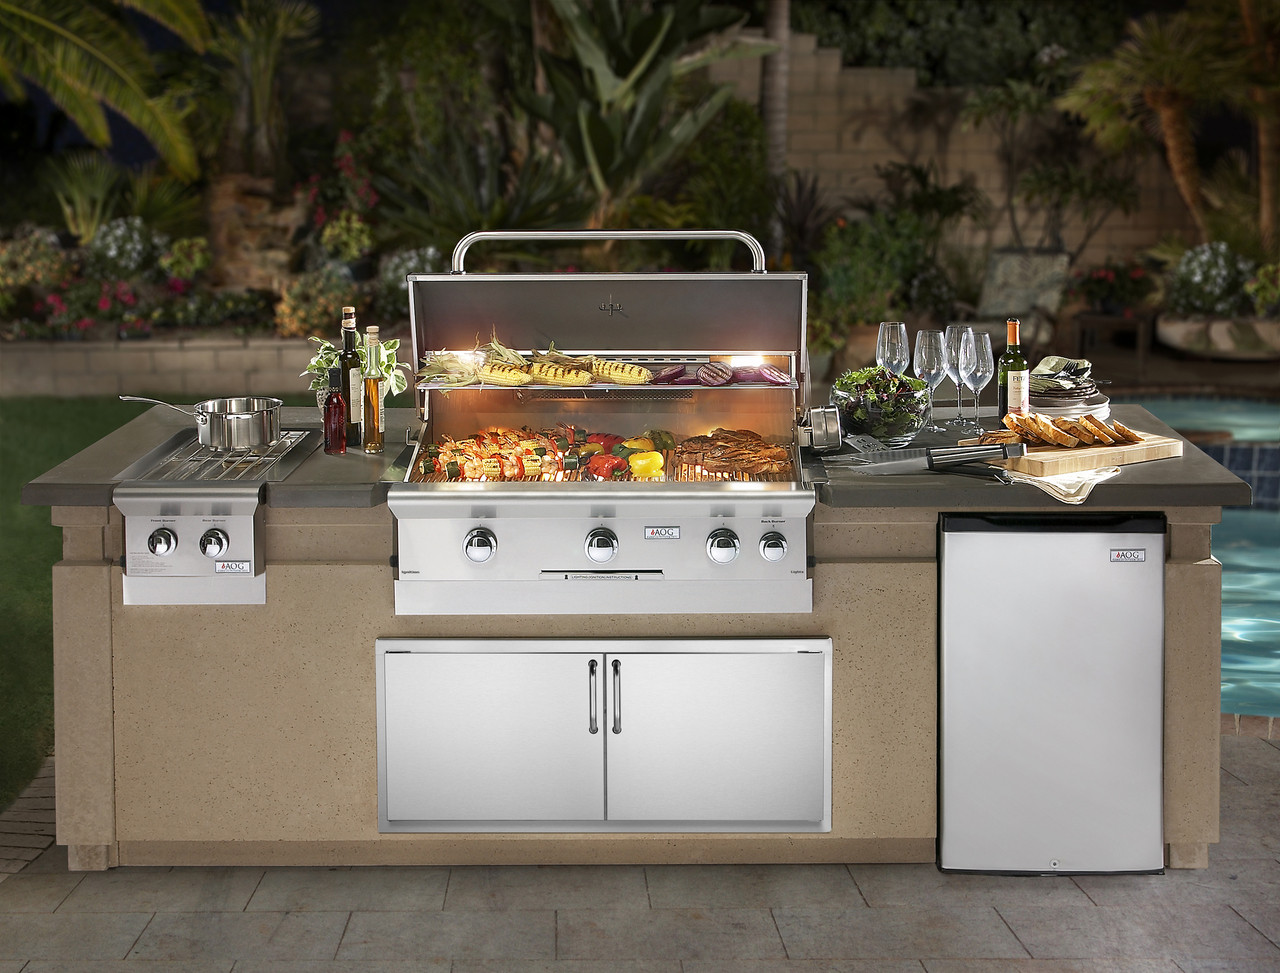 AOG Grills add Style & Cooking excellence to your Outdoor Kitchen